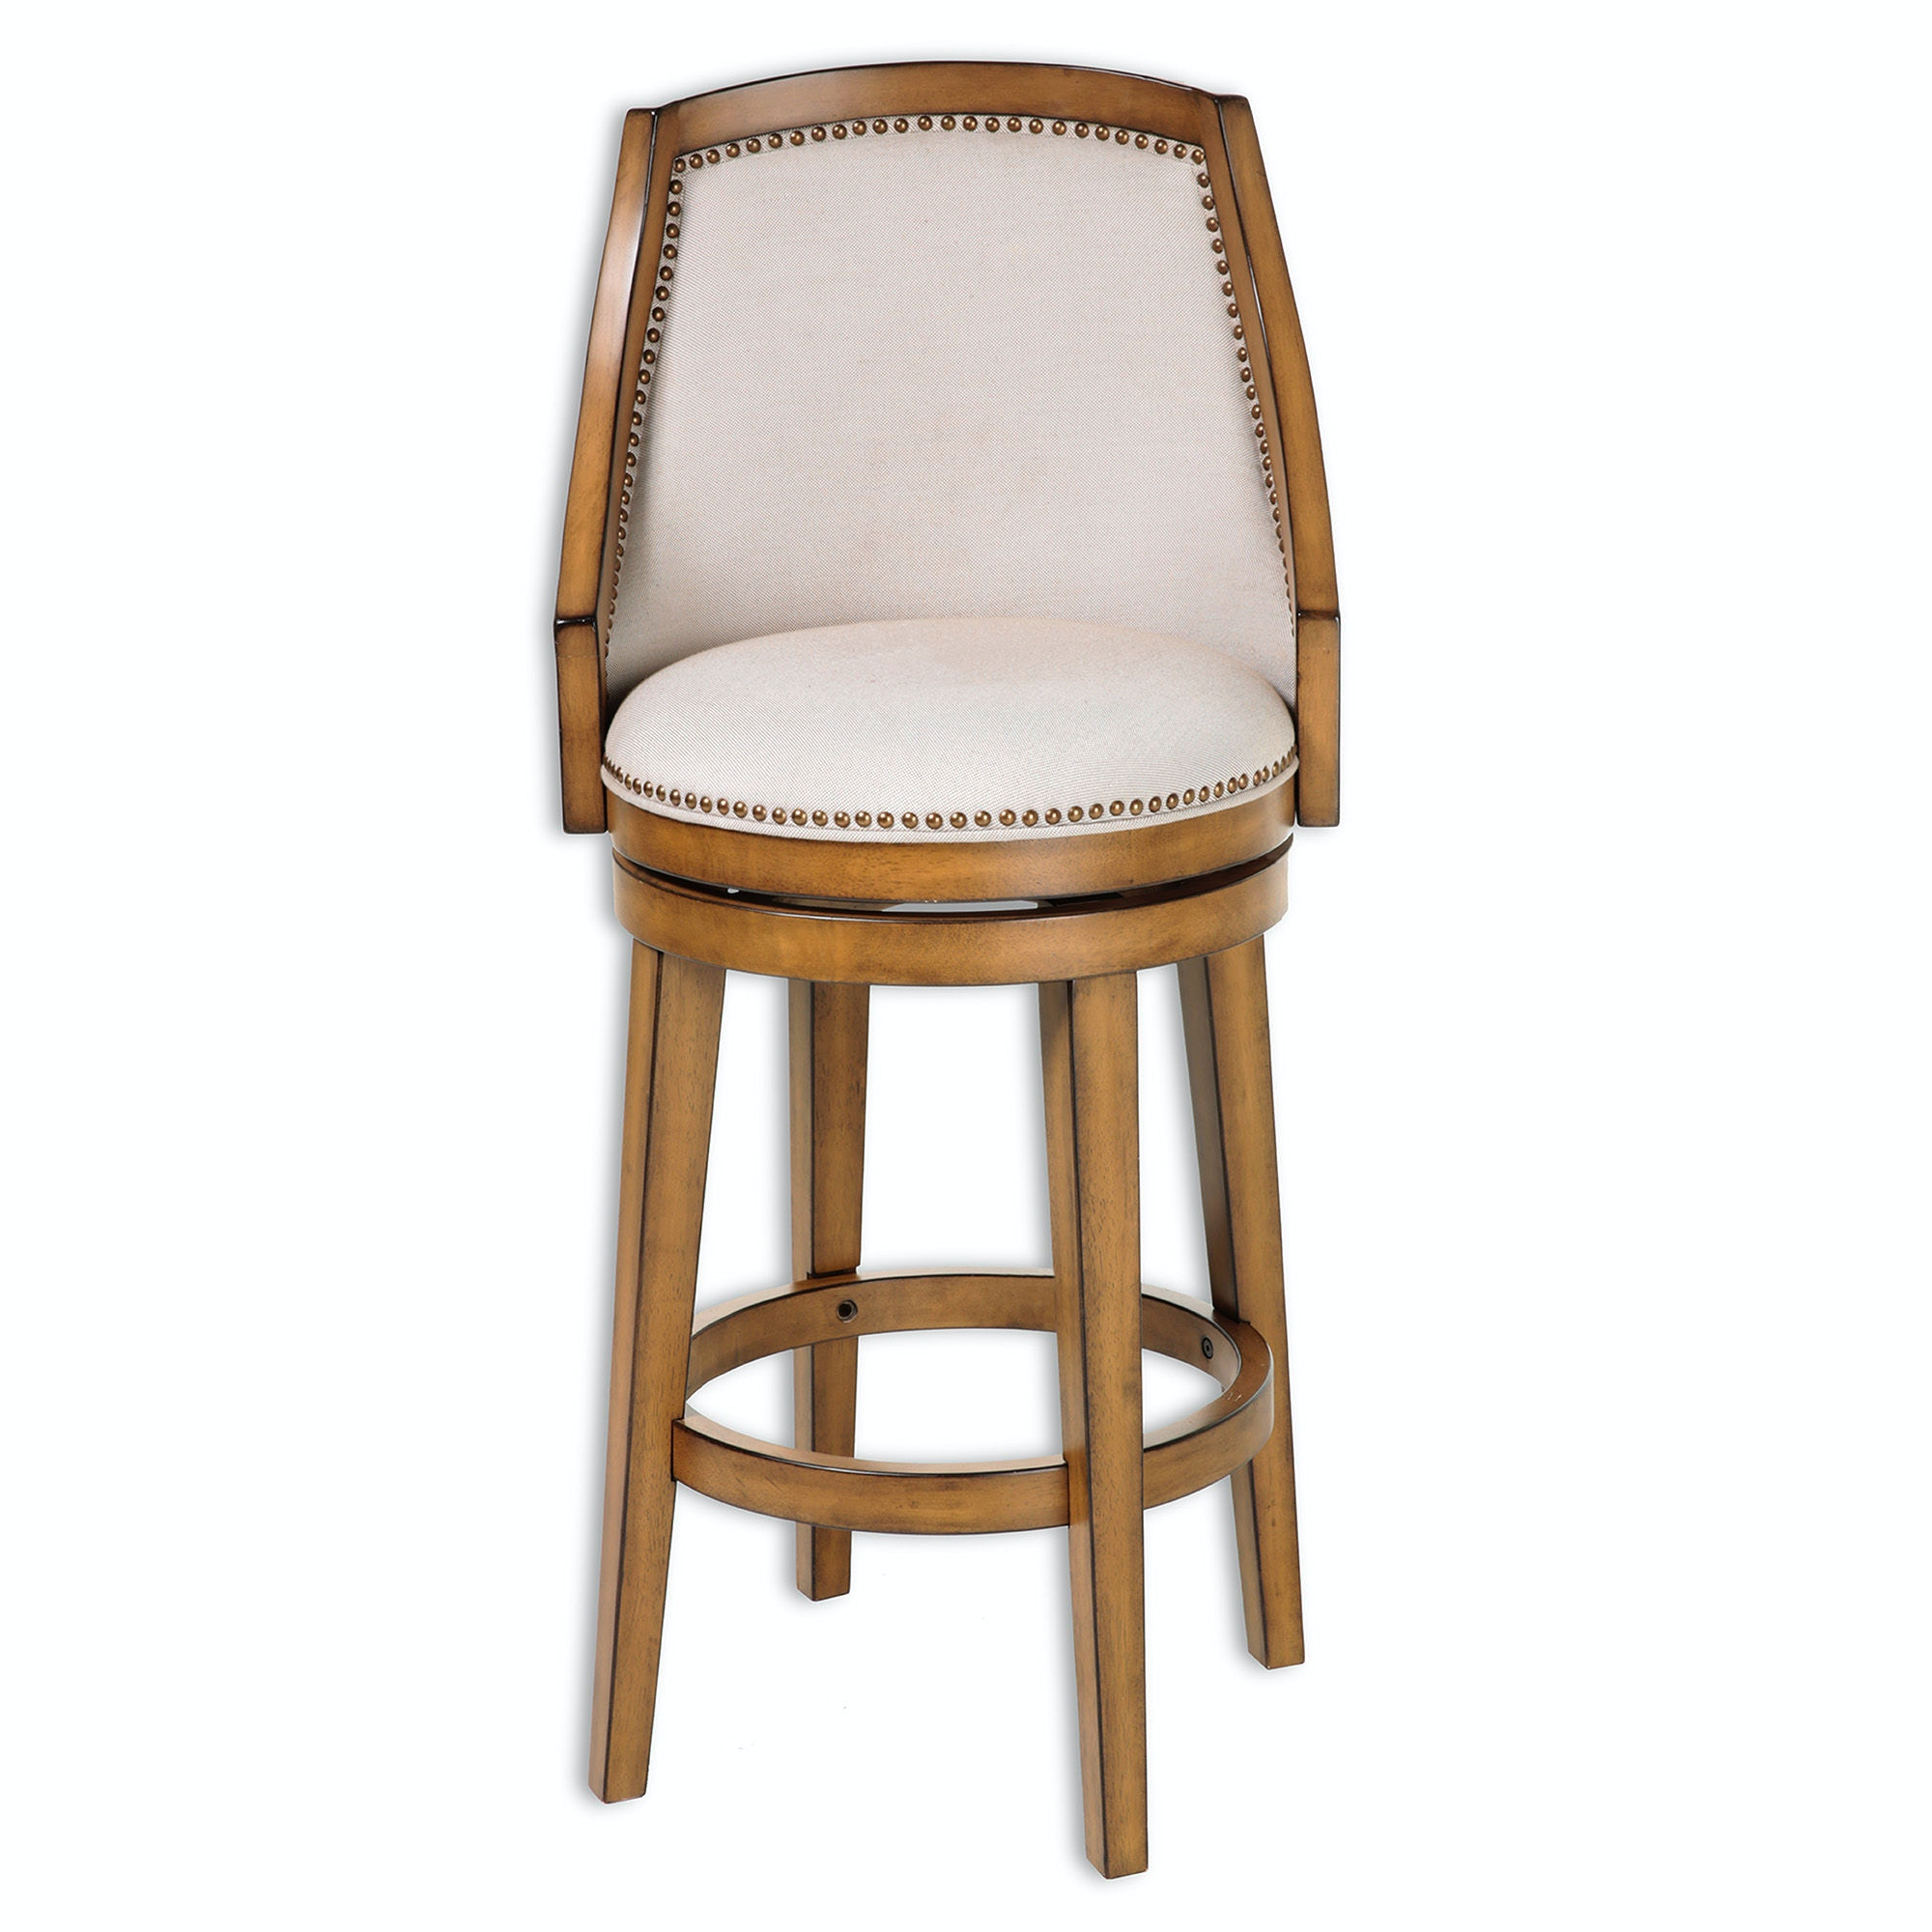 chair bed stool resin wicker rocking fashion group bar and game room charleston swivel seat counter with acorn finished wood